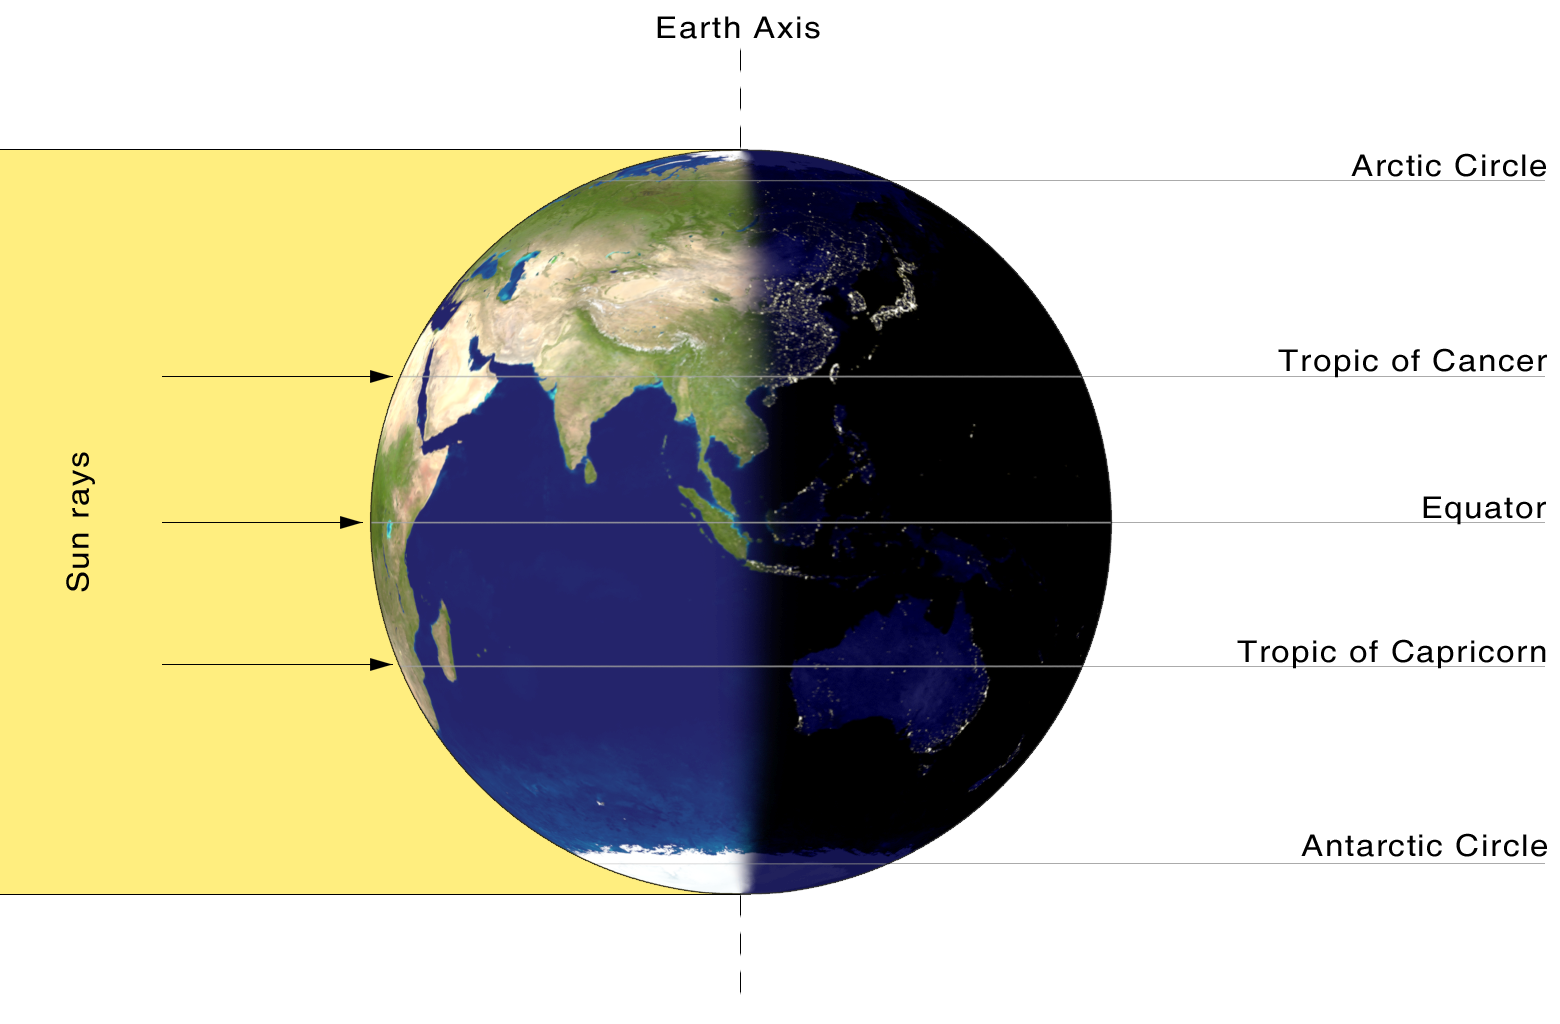 March equinox - march 21 - end of summer in southern hemisphere